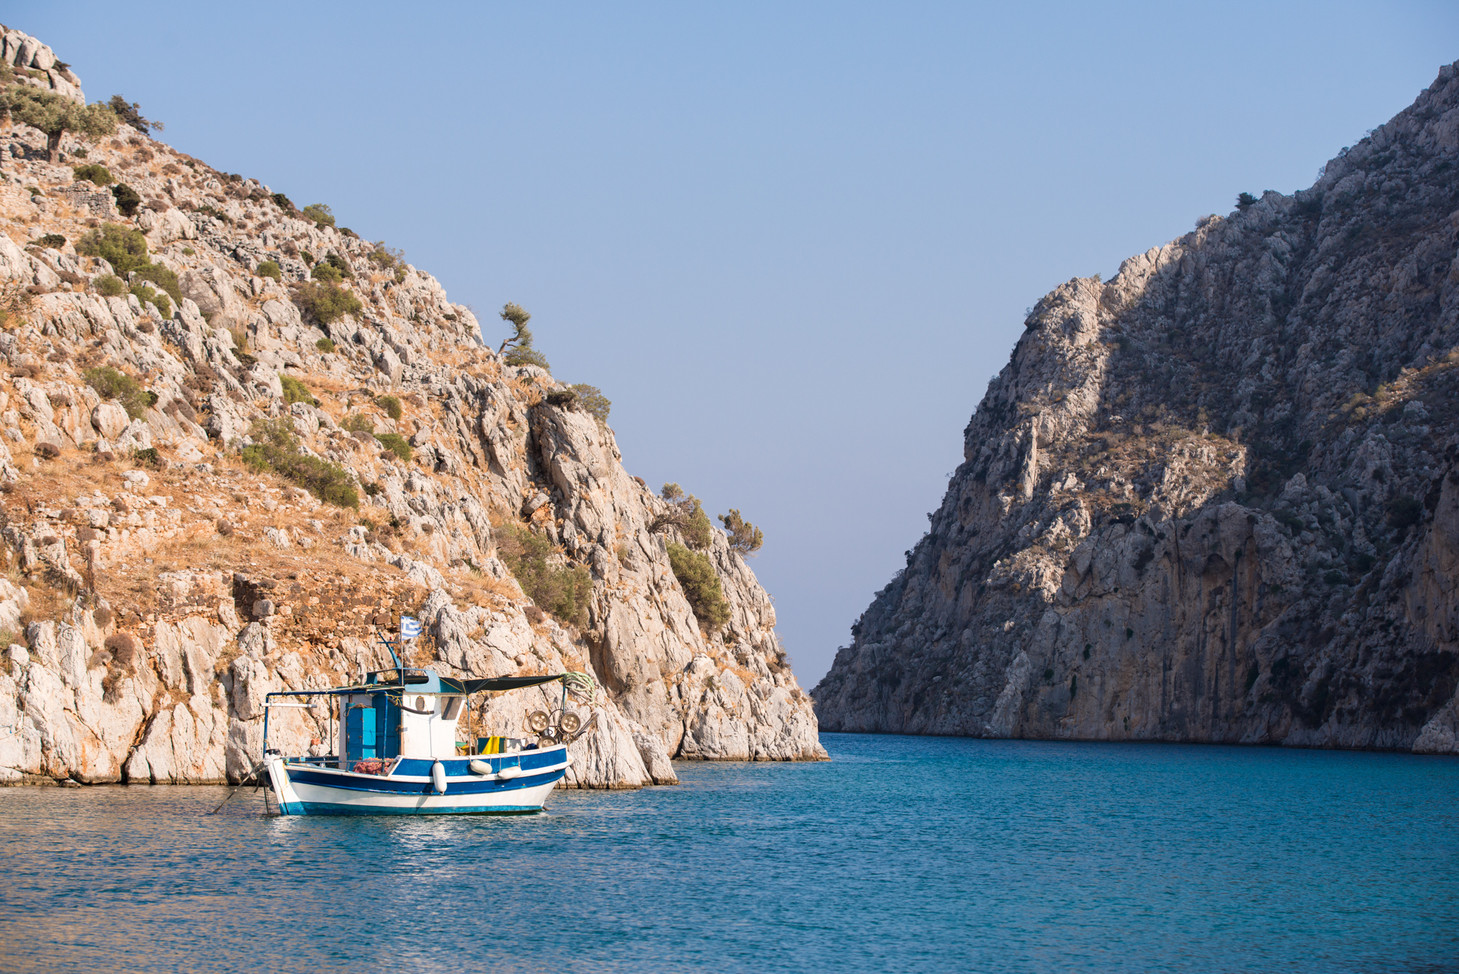 Fishing boat in Kalymnos, Greece